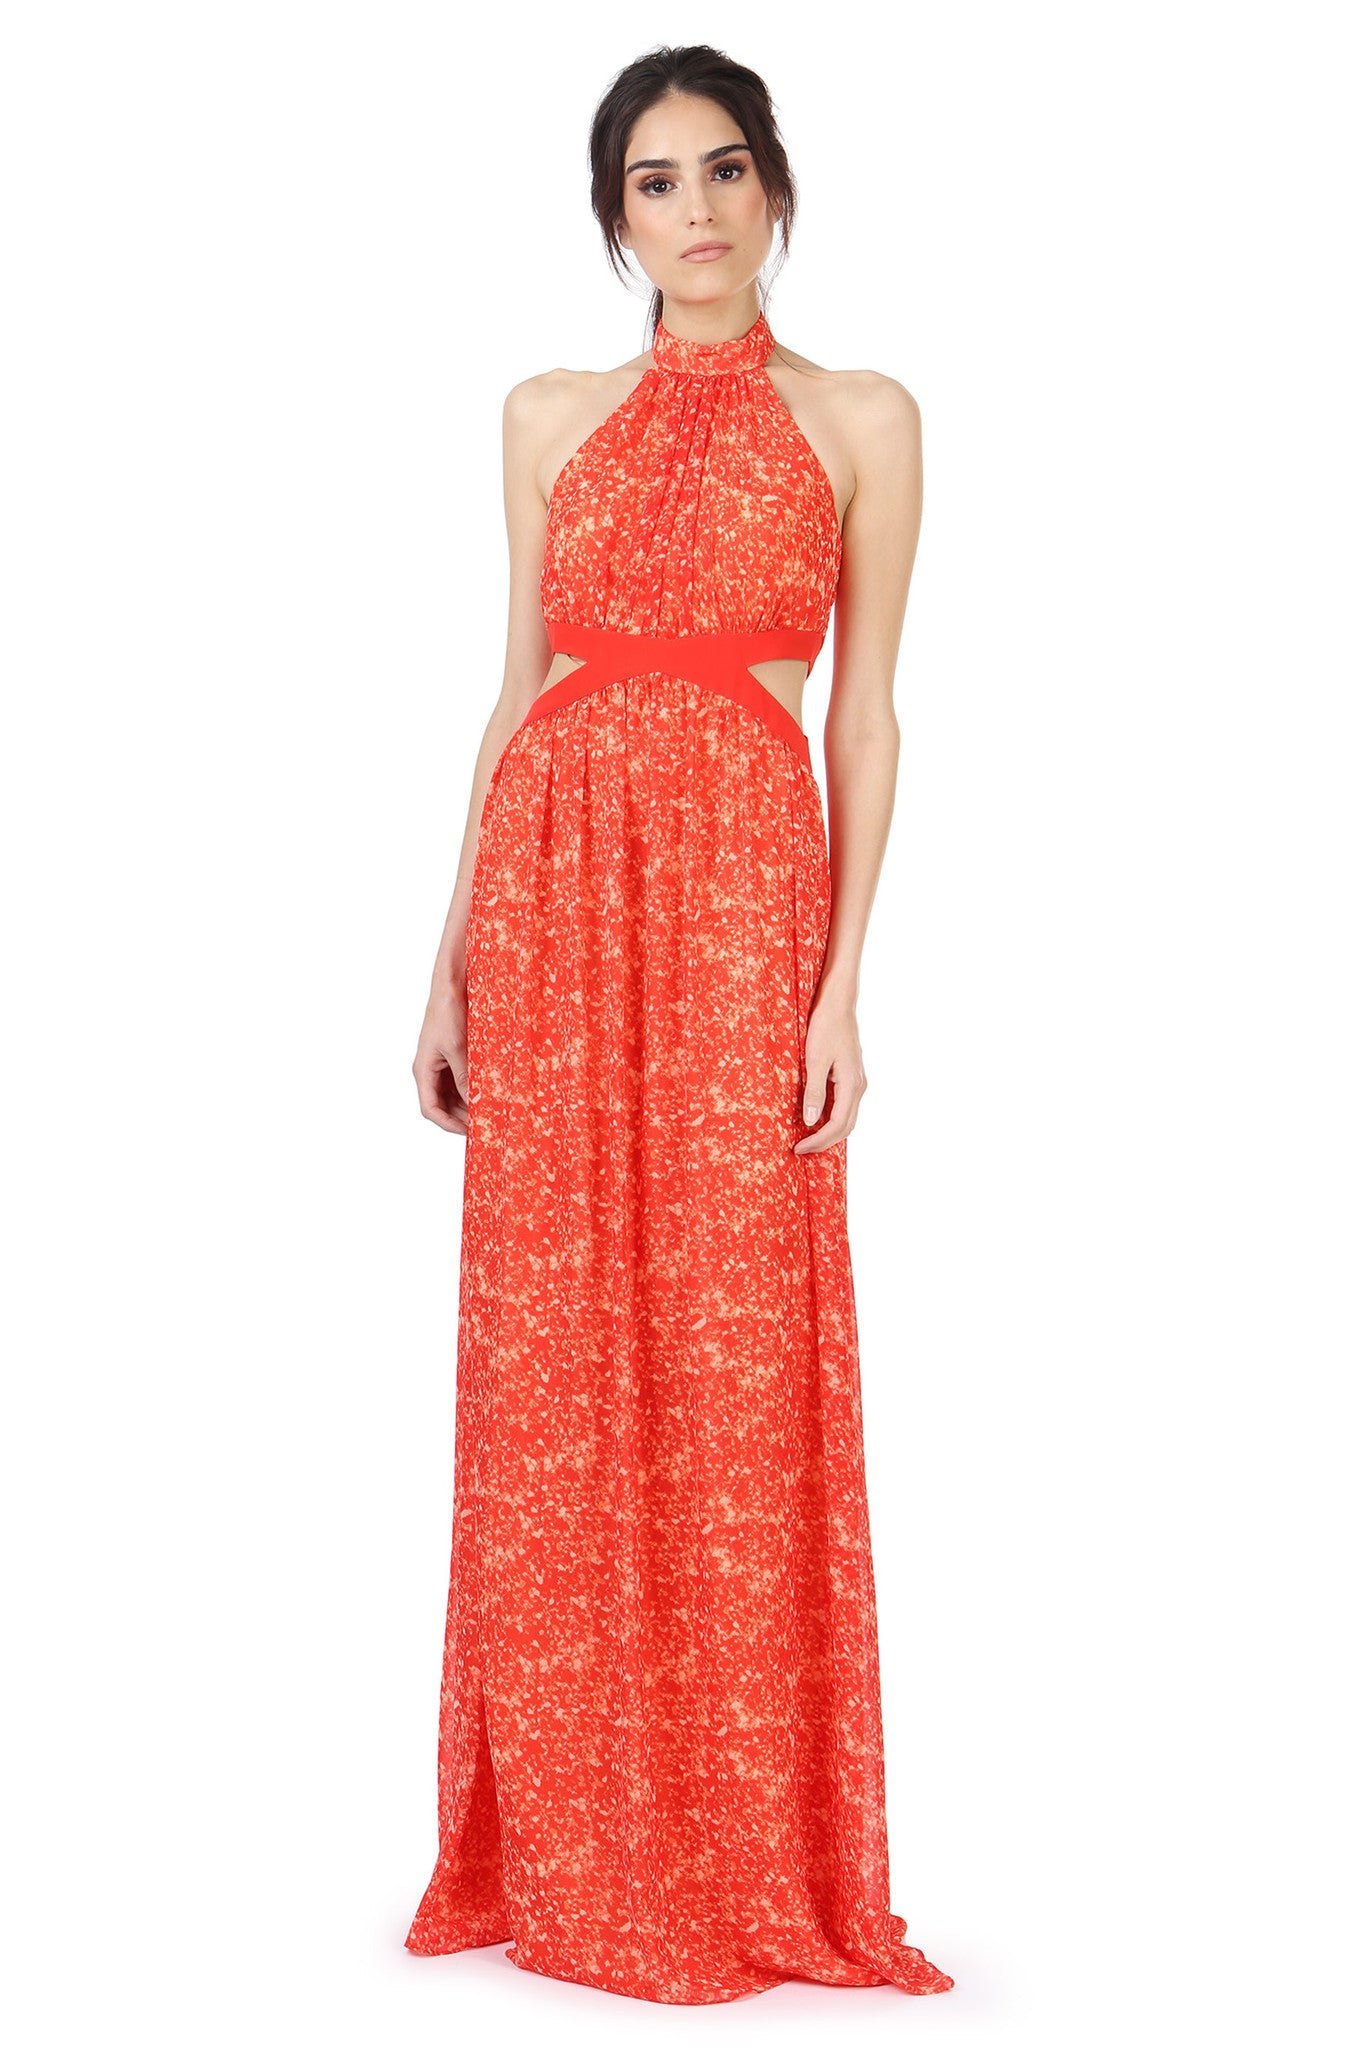 Jay Godfrey Printed Orange Grecian Dress - Front View